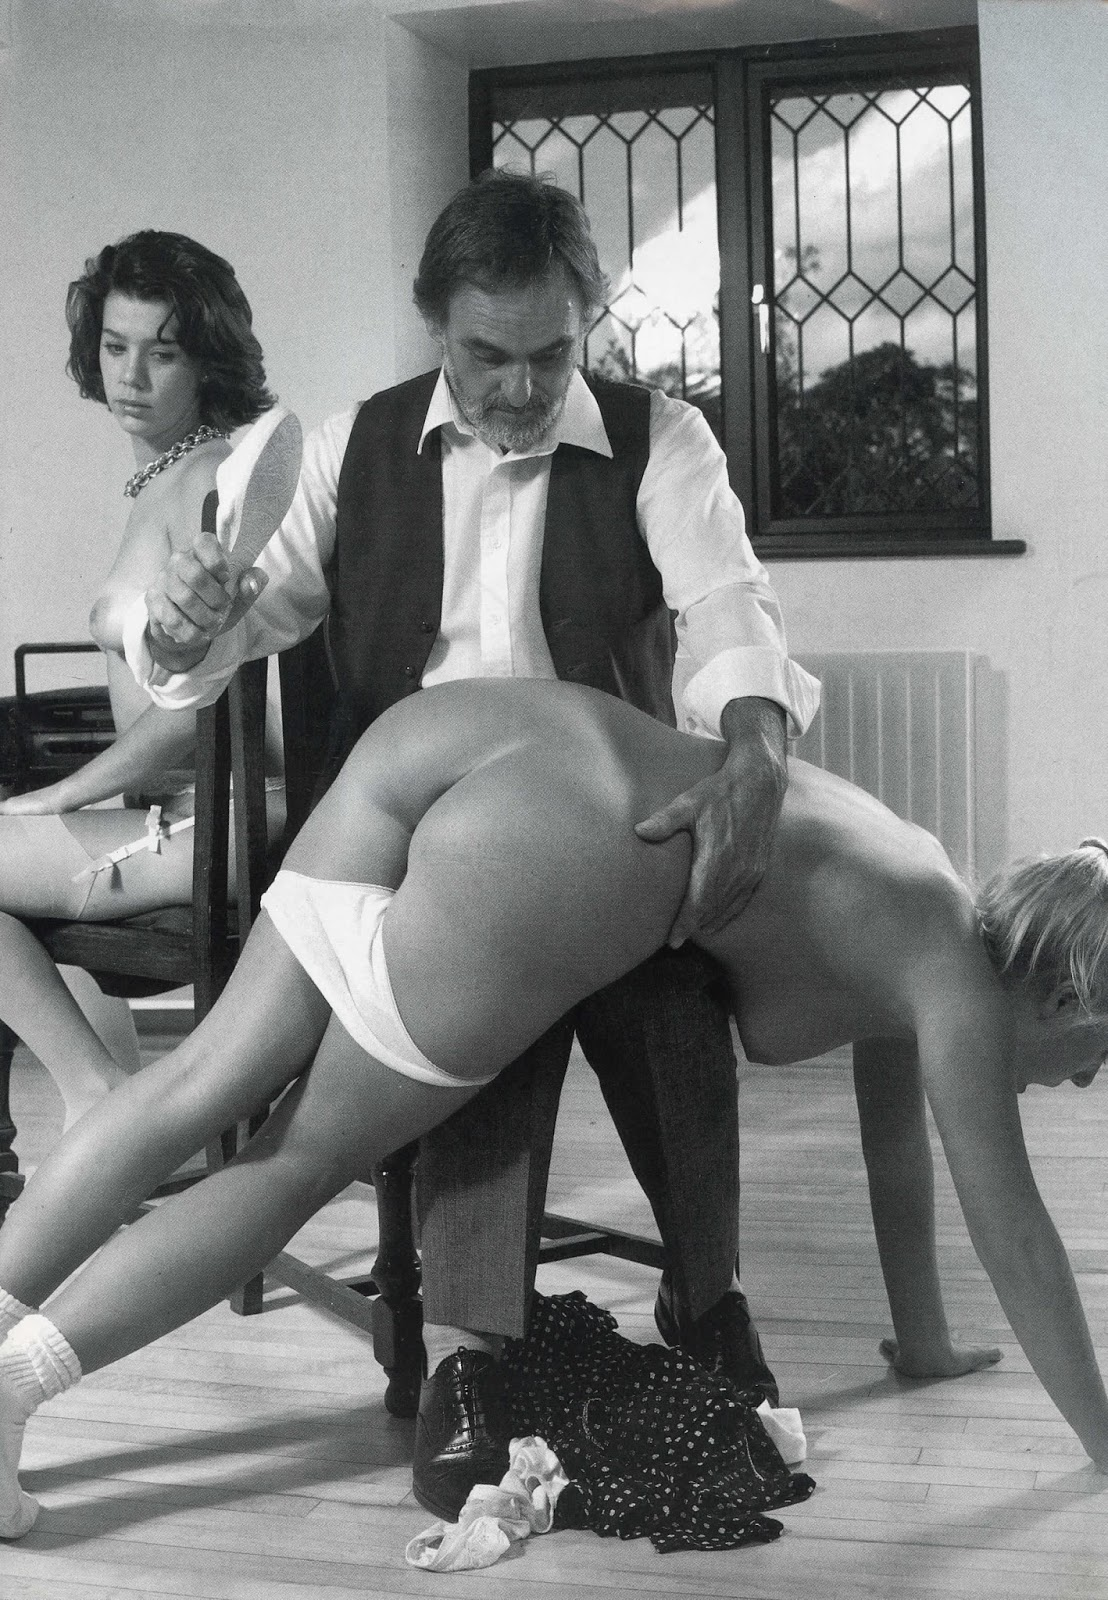 Women Spanking Men Tumblr